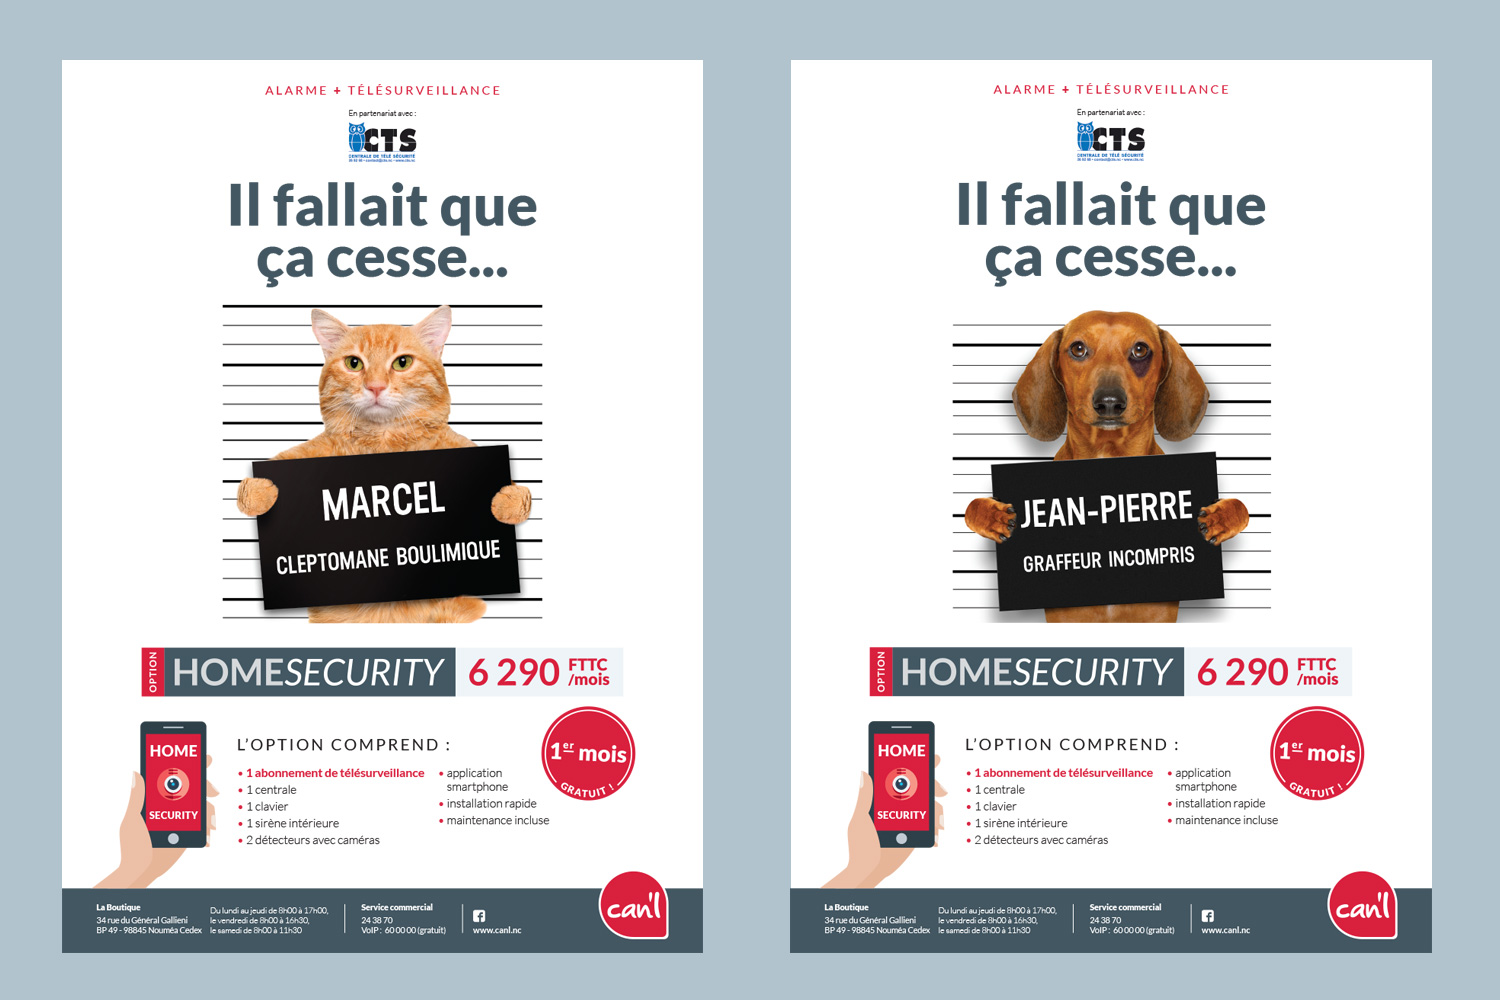 Coup d'Ouest - Can'l - Home Security